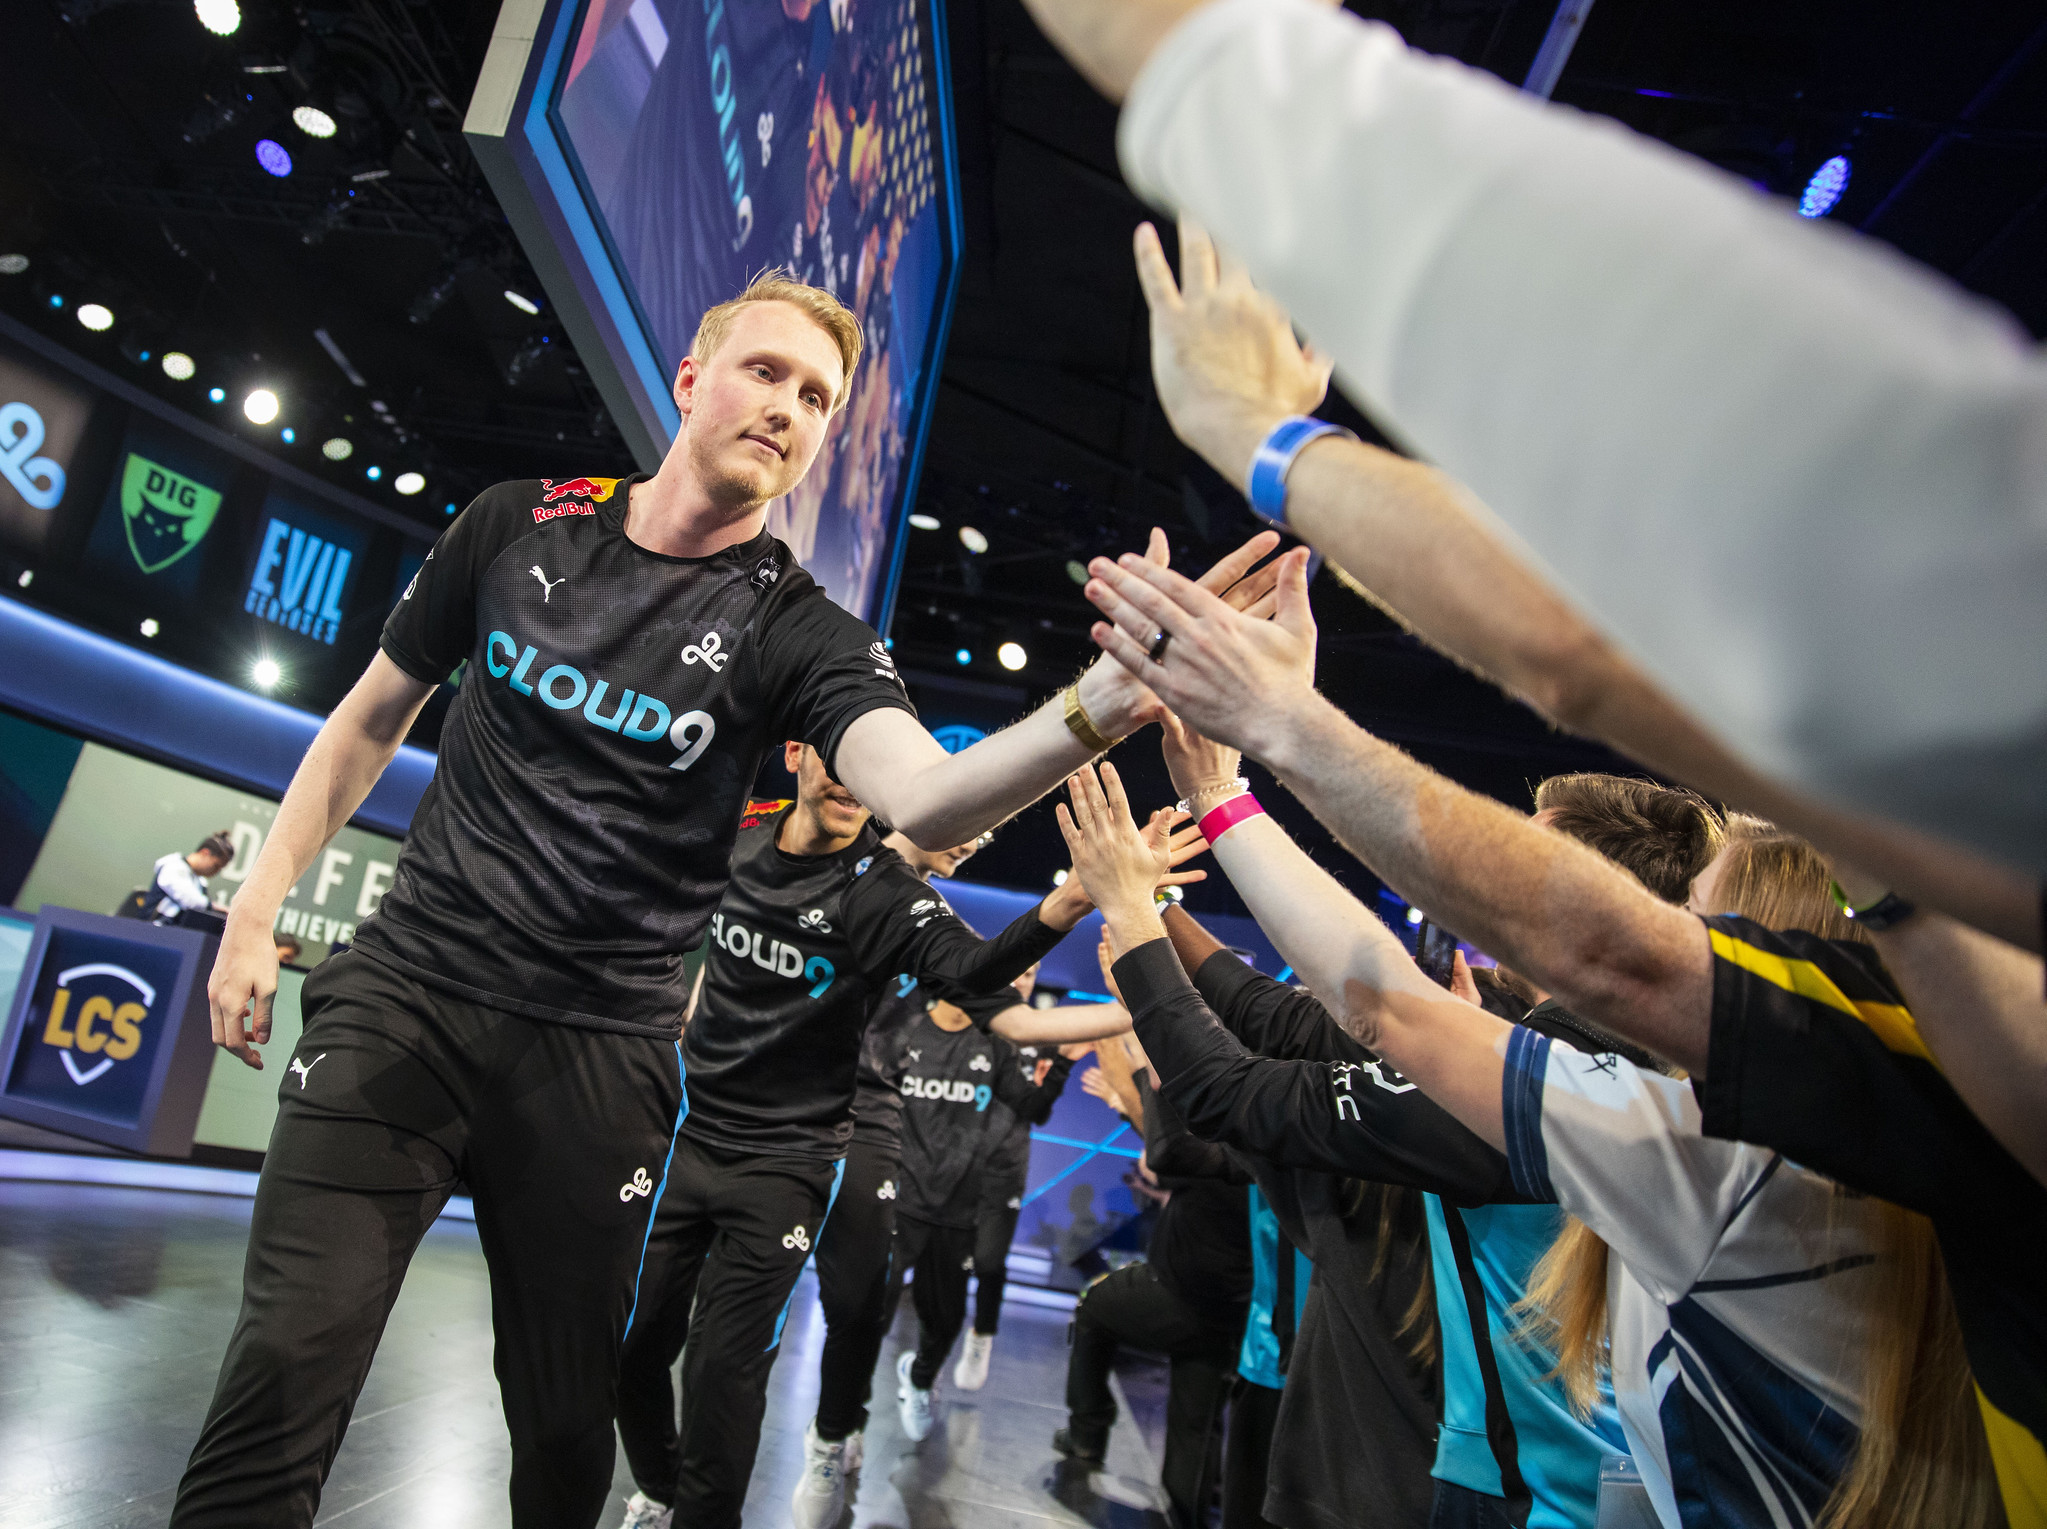 Zven says C9 helped the team differentiate scrims from LCS by changing houses on game days